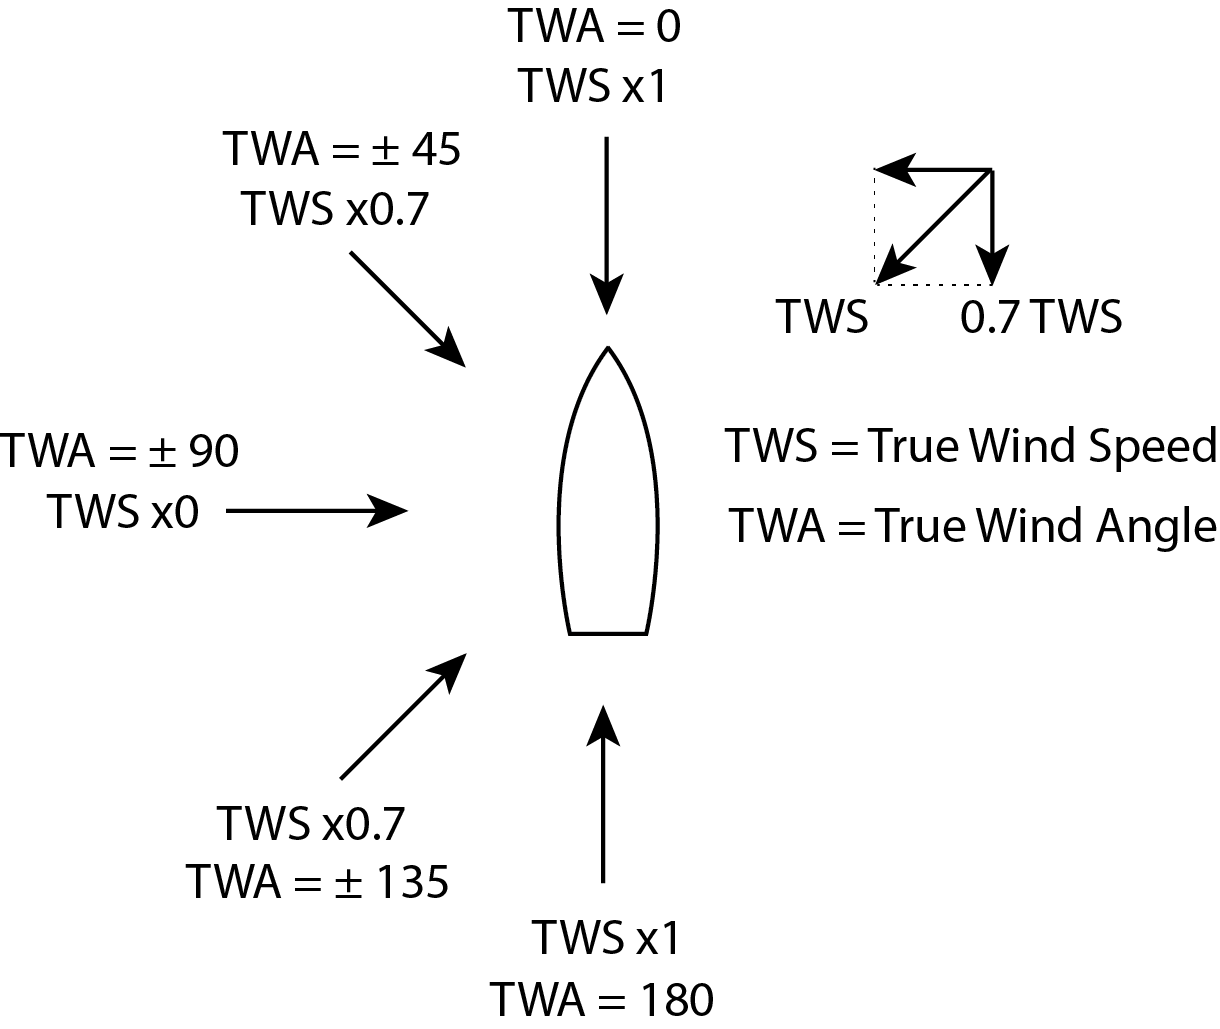 medium resolution of figure 3 estimating effect of tws at various twa based on head wind and tail wind values for example with a tws of 10 kts at a twa 45 we would read